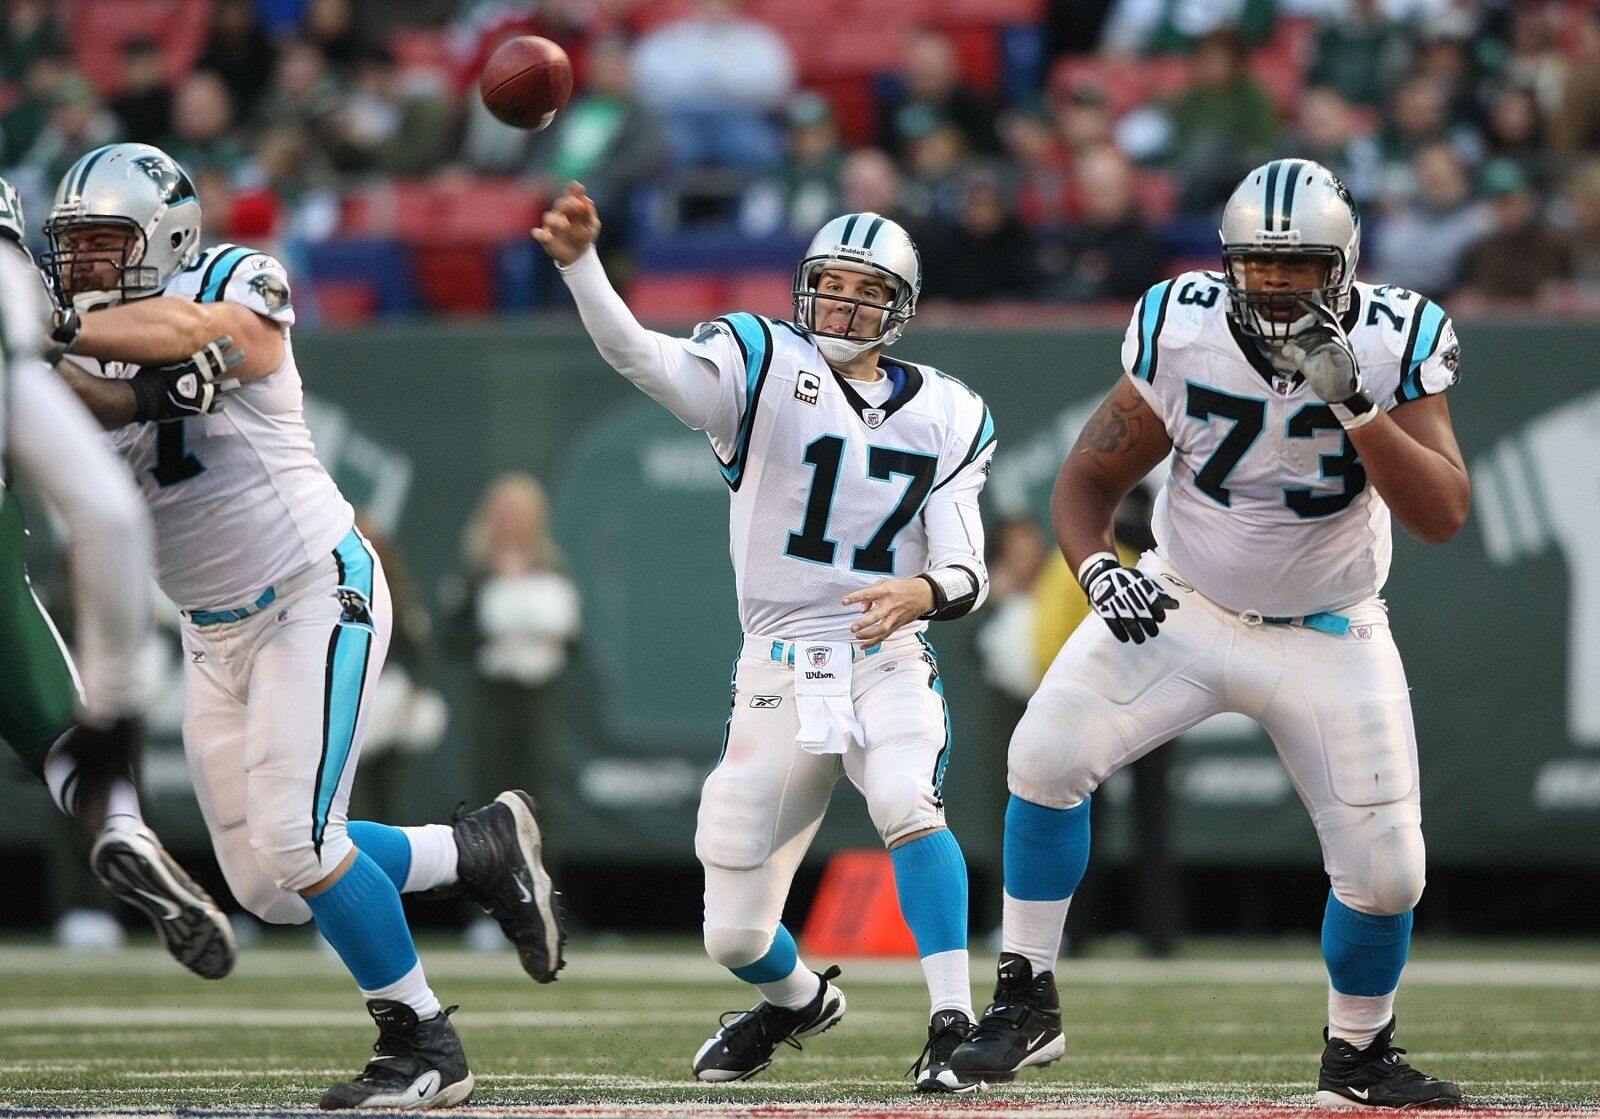 2003=2019? Why Allen and Delhomme are similar for Panthers